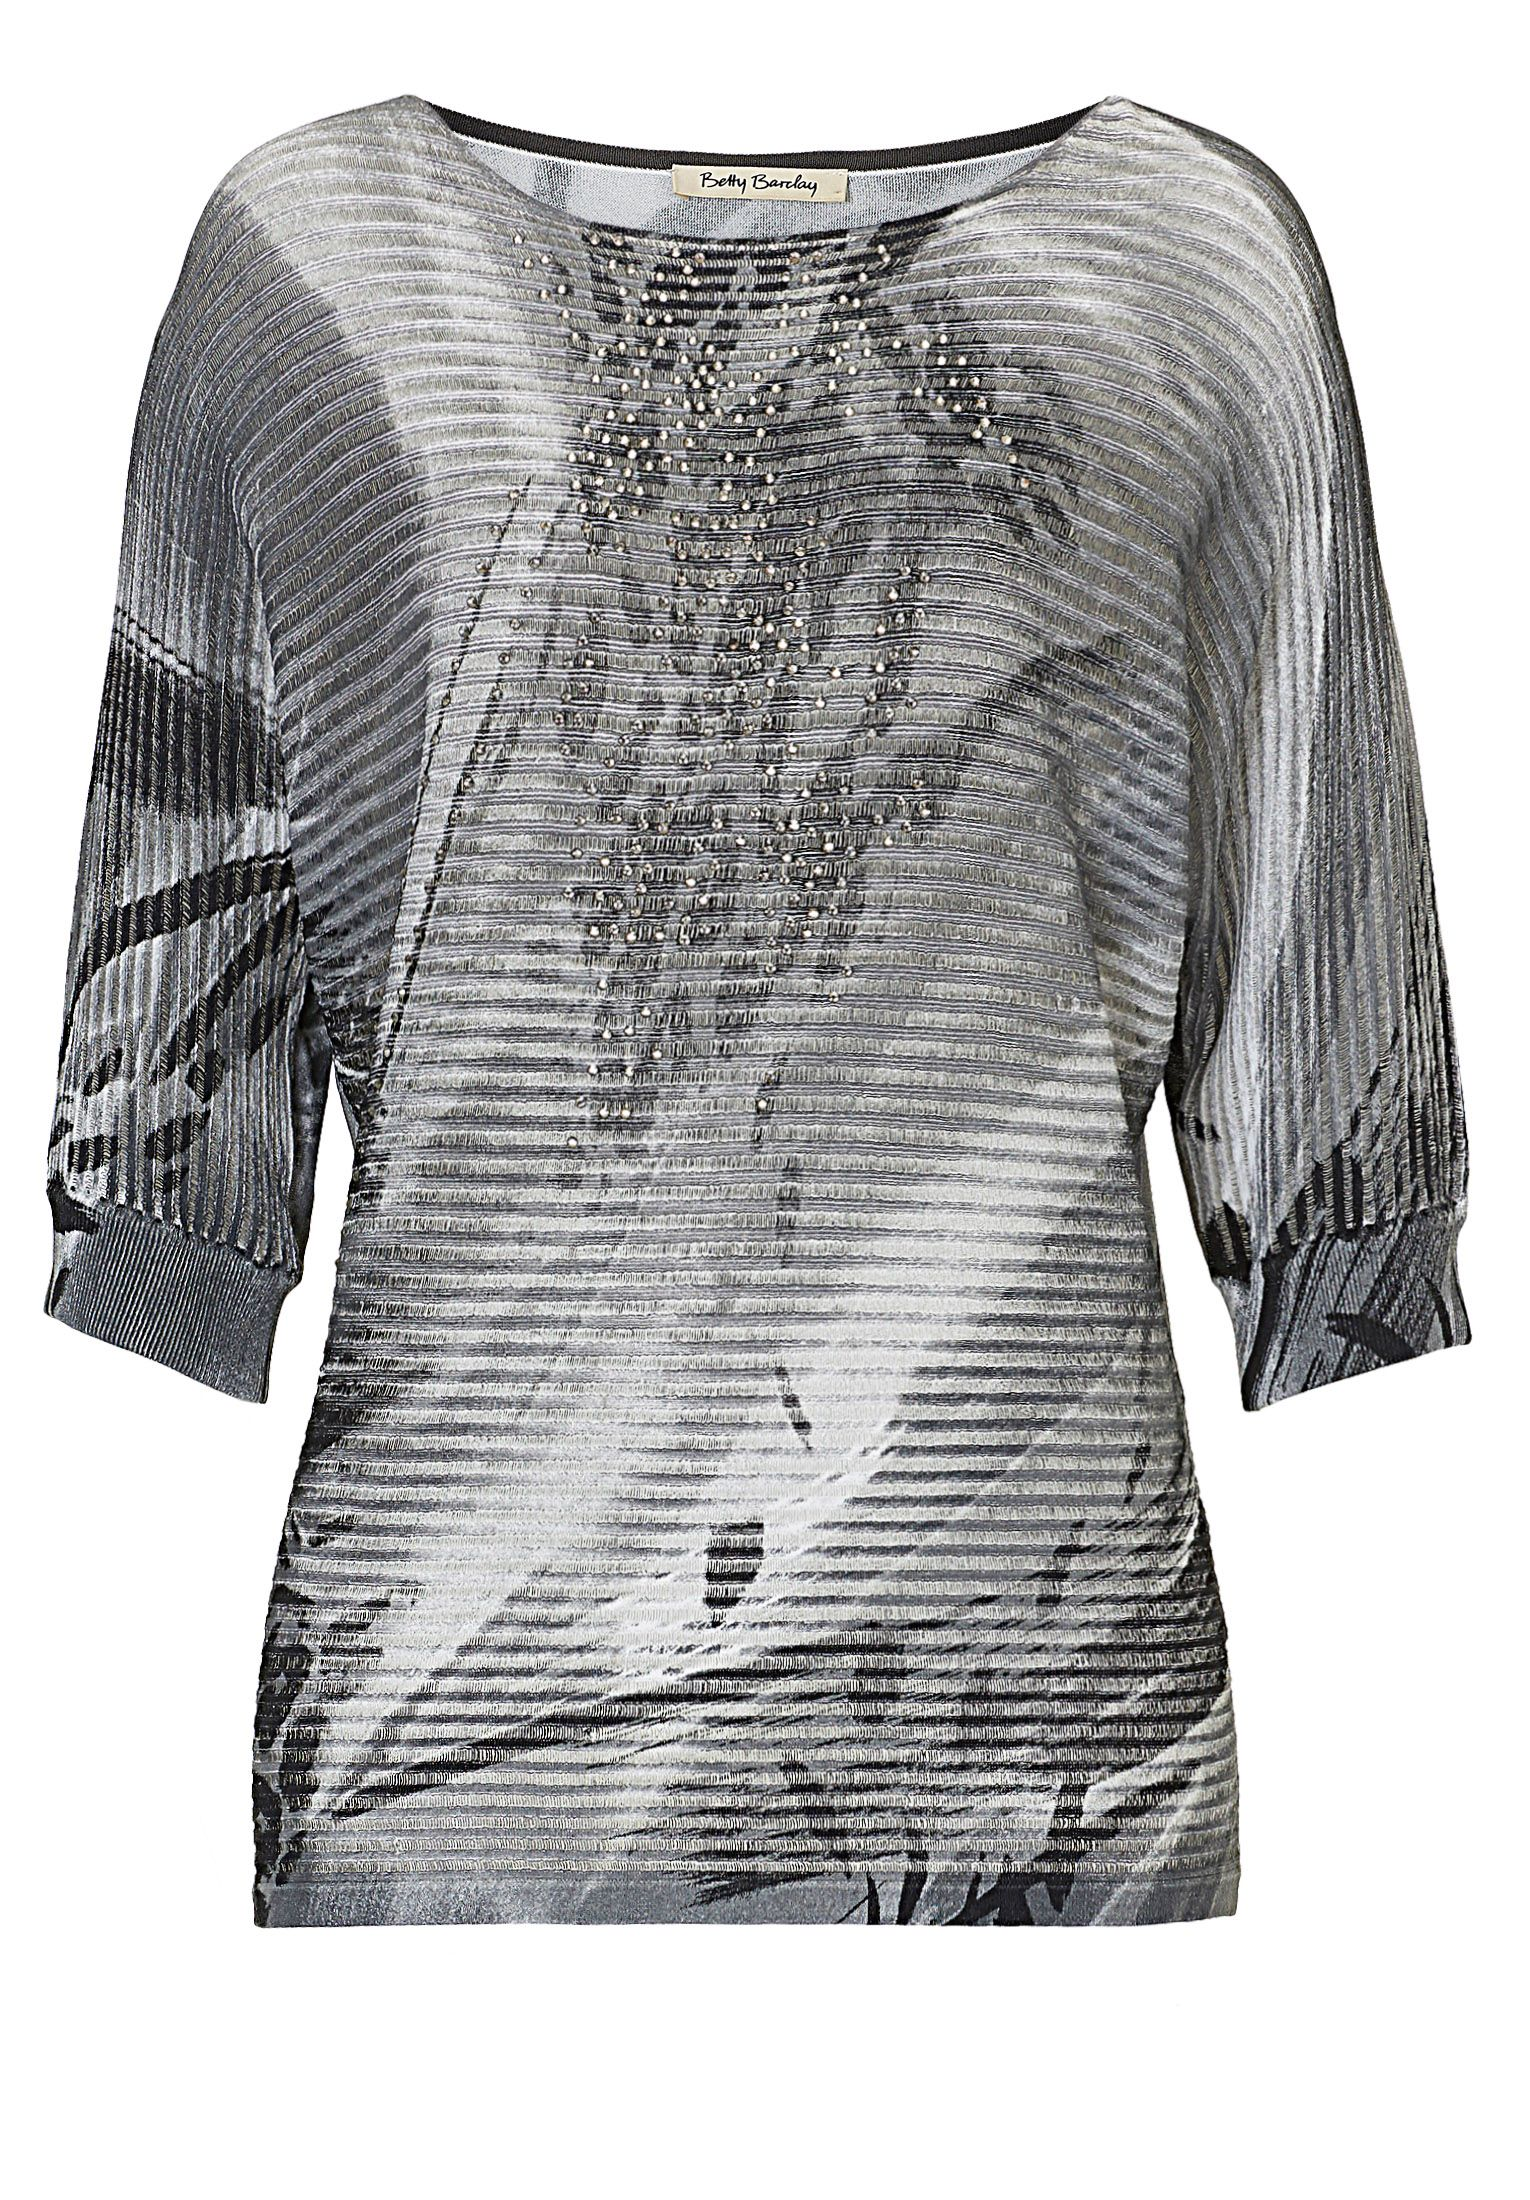 Betty Barclay Graphic print embellished top, White